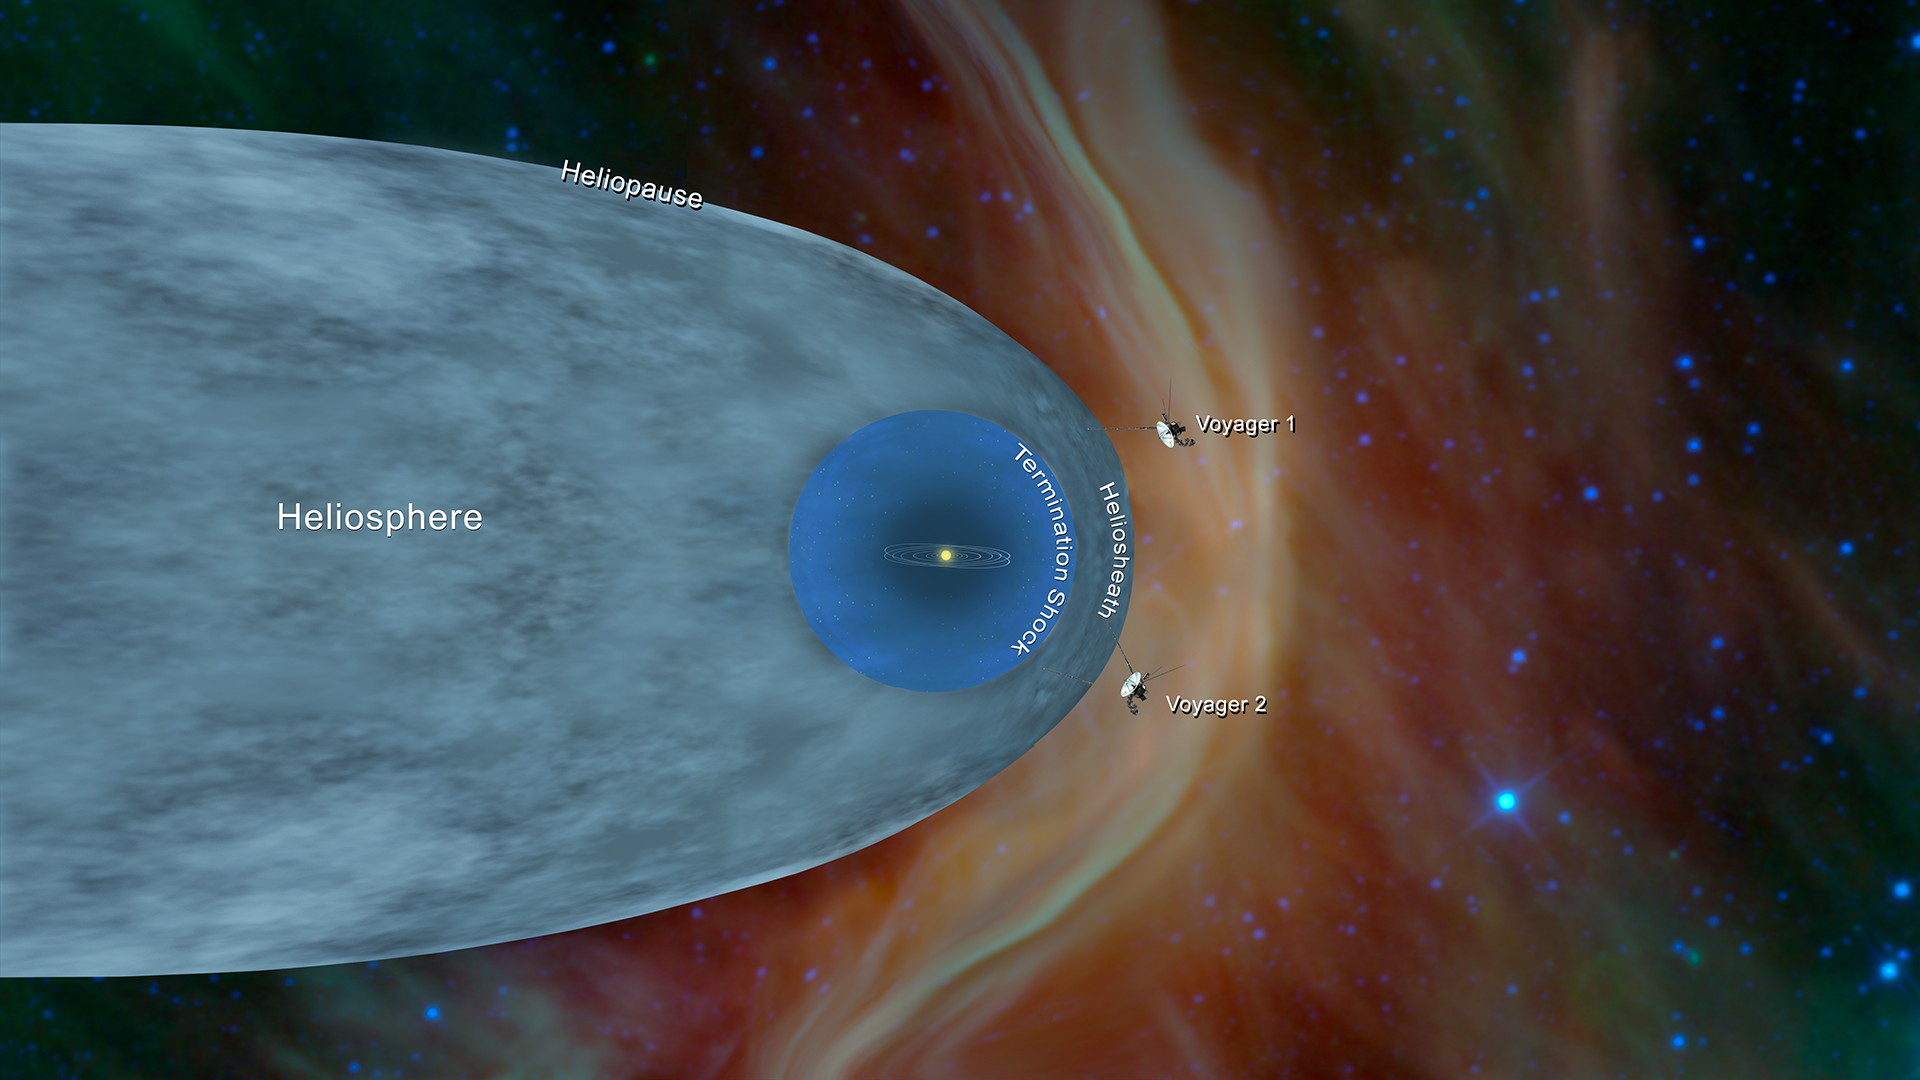 An artist's impression depicting where the Voyager 2 spacecraft is relative to Voyager 1.